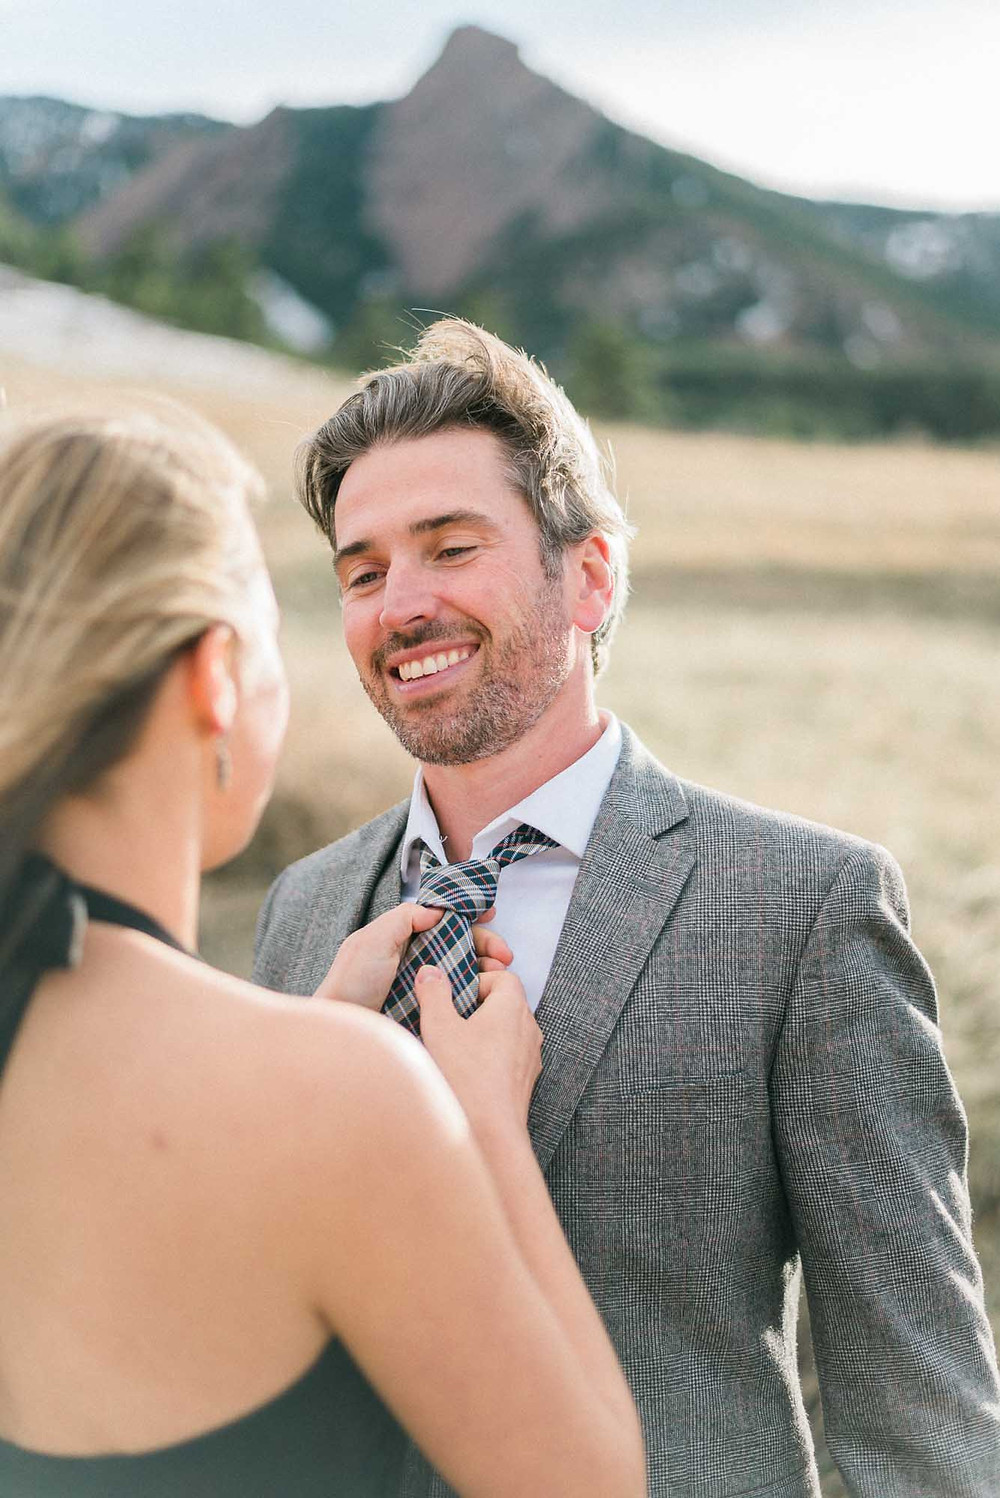 Fixing Husbands Tie at Portrait Session